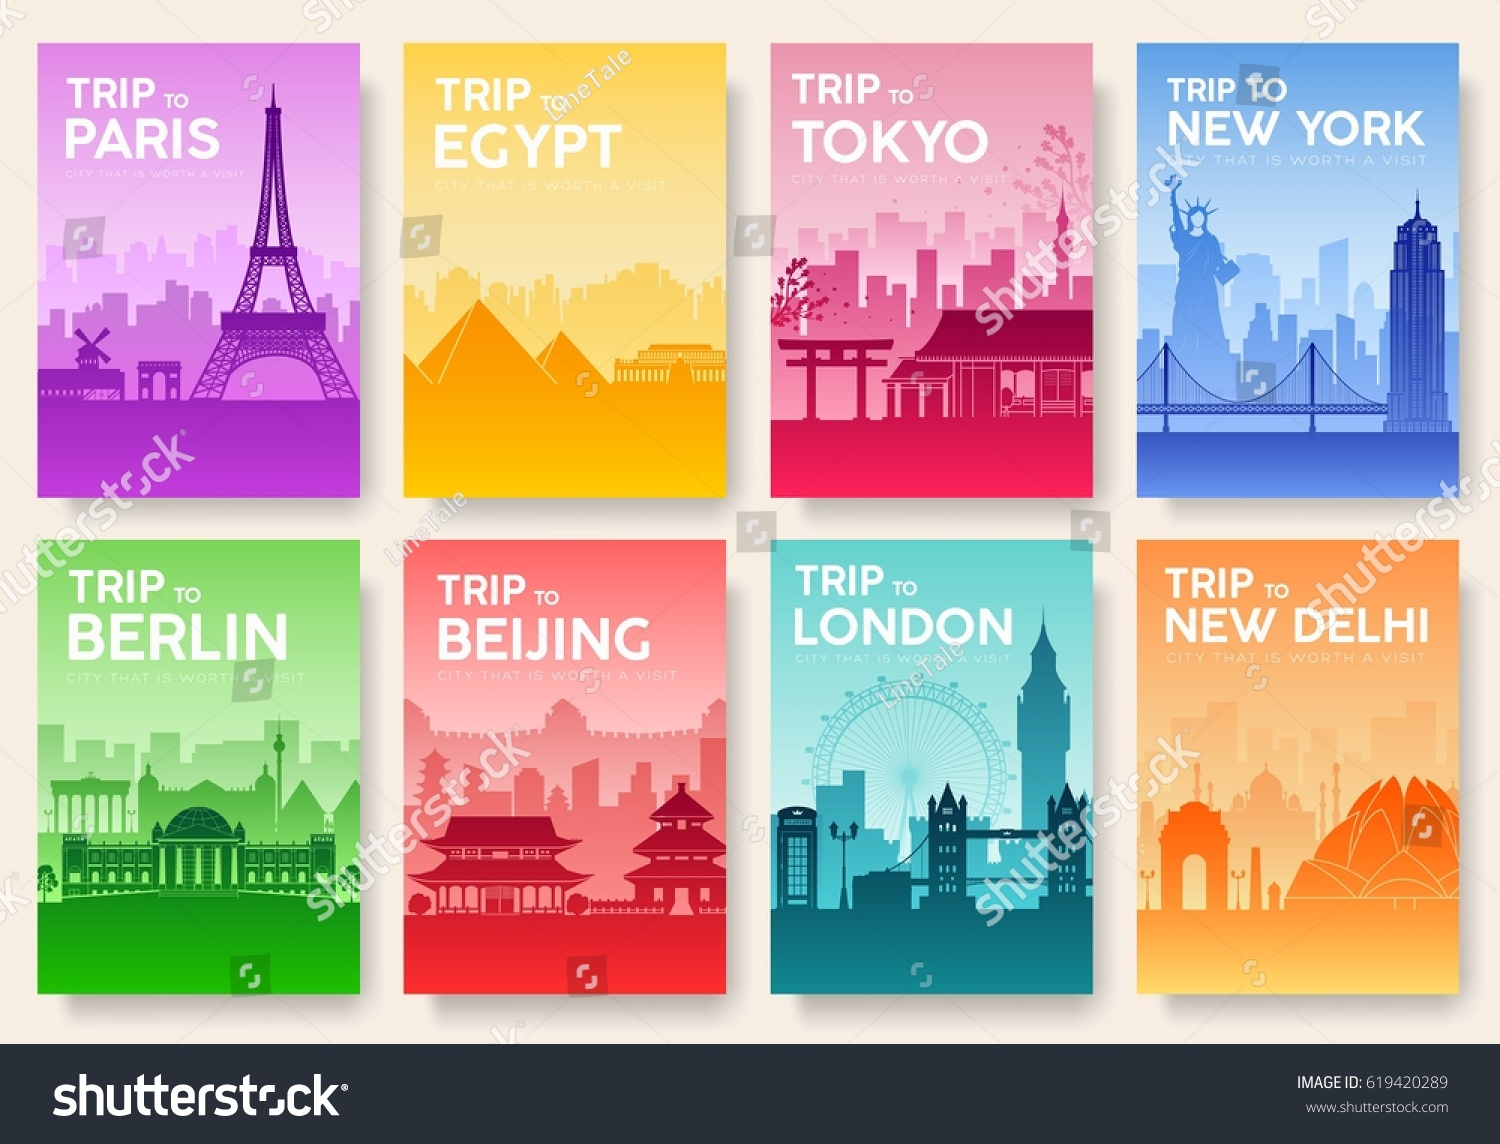 Travel Book Cover ~ Travel information cards landscape template flyear stock